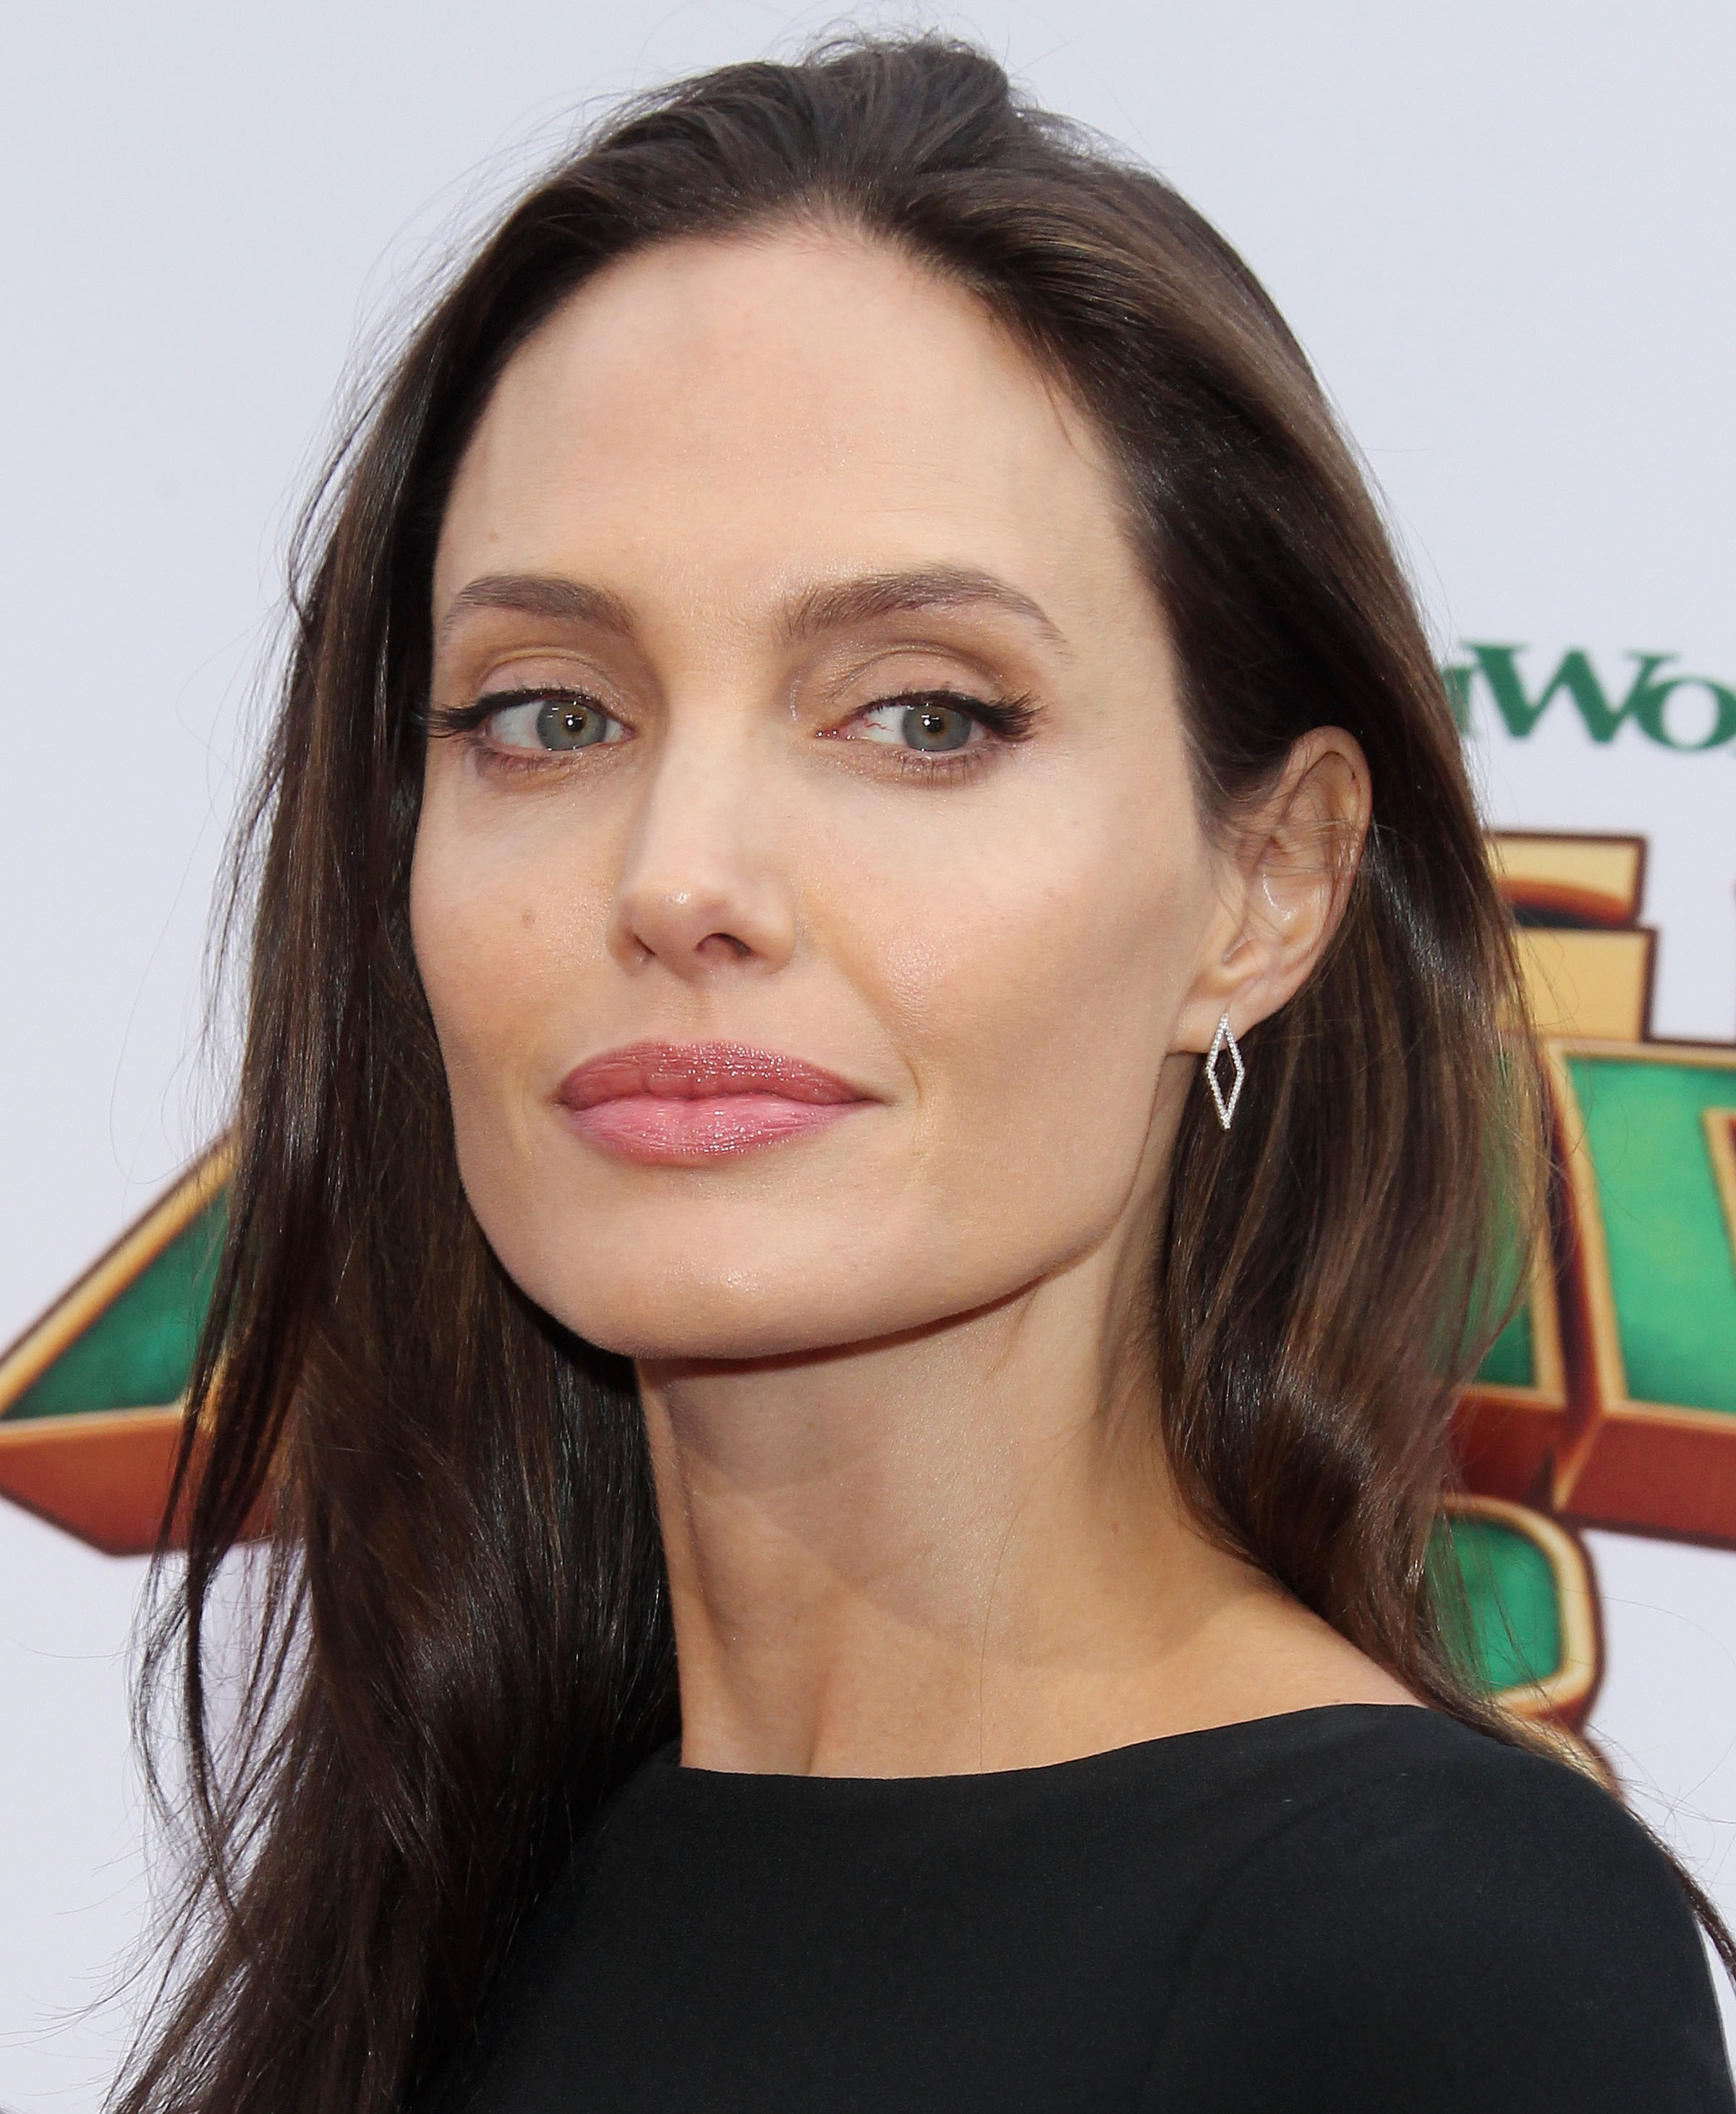 Angelina Jolie's ex opens up: 'I never felt good enough for her'